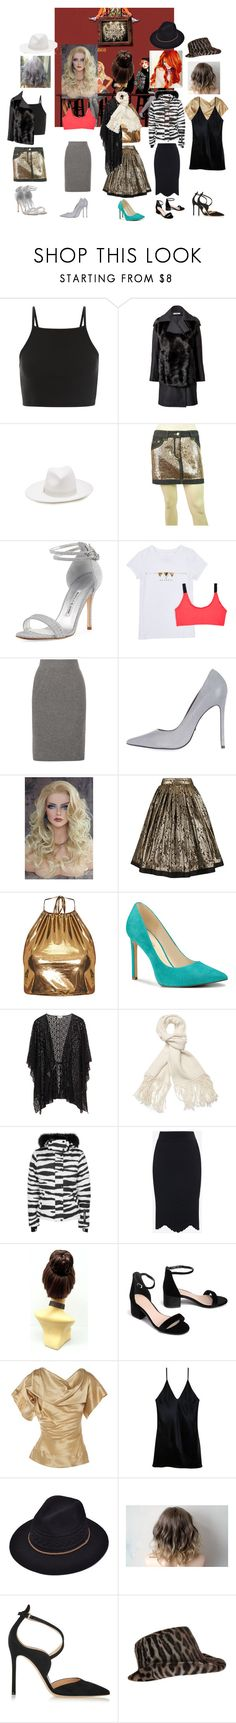 """P!ATD- A Fever You Can't Sweat Out"" by batgirl-at-the-disco3 ❤ liked on Polyvore featuring Jil Sander, Eugenia Kim, Dolce&Gabbana, Manolo Blahnik, Onzie, Madewell, Topshop, Versace, Nine West and Helmut Lang"